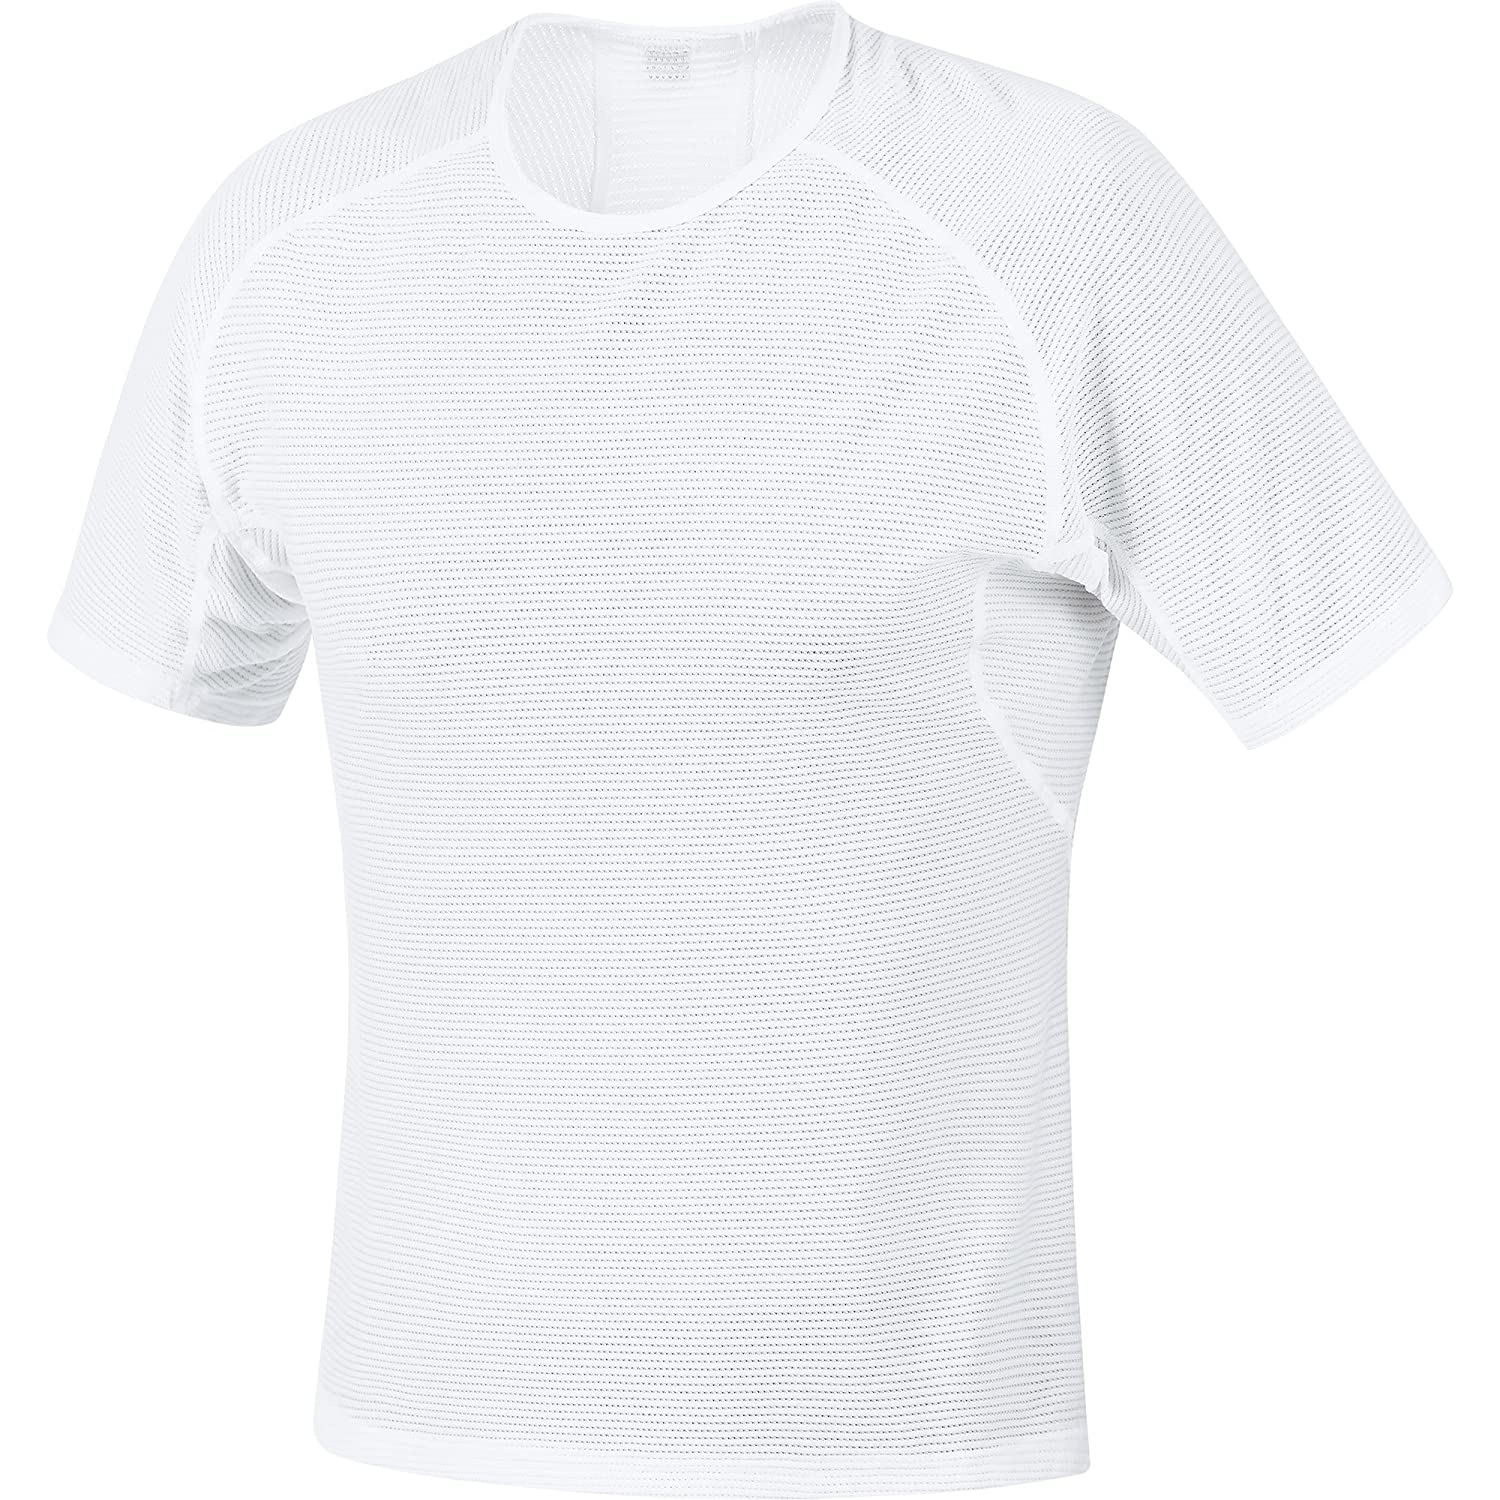 GORE BIKE Men's WEAR GORE BIKE Men's WEAR GORE BIKE WEAR® USHIRT010003